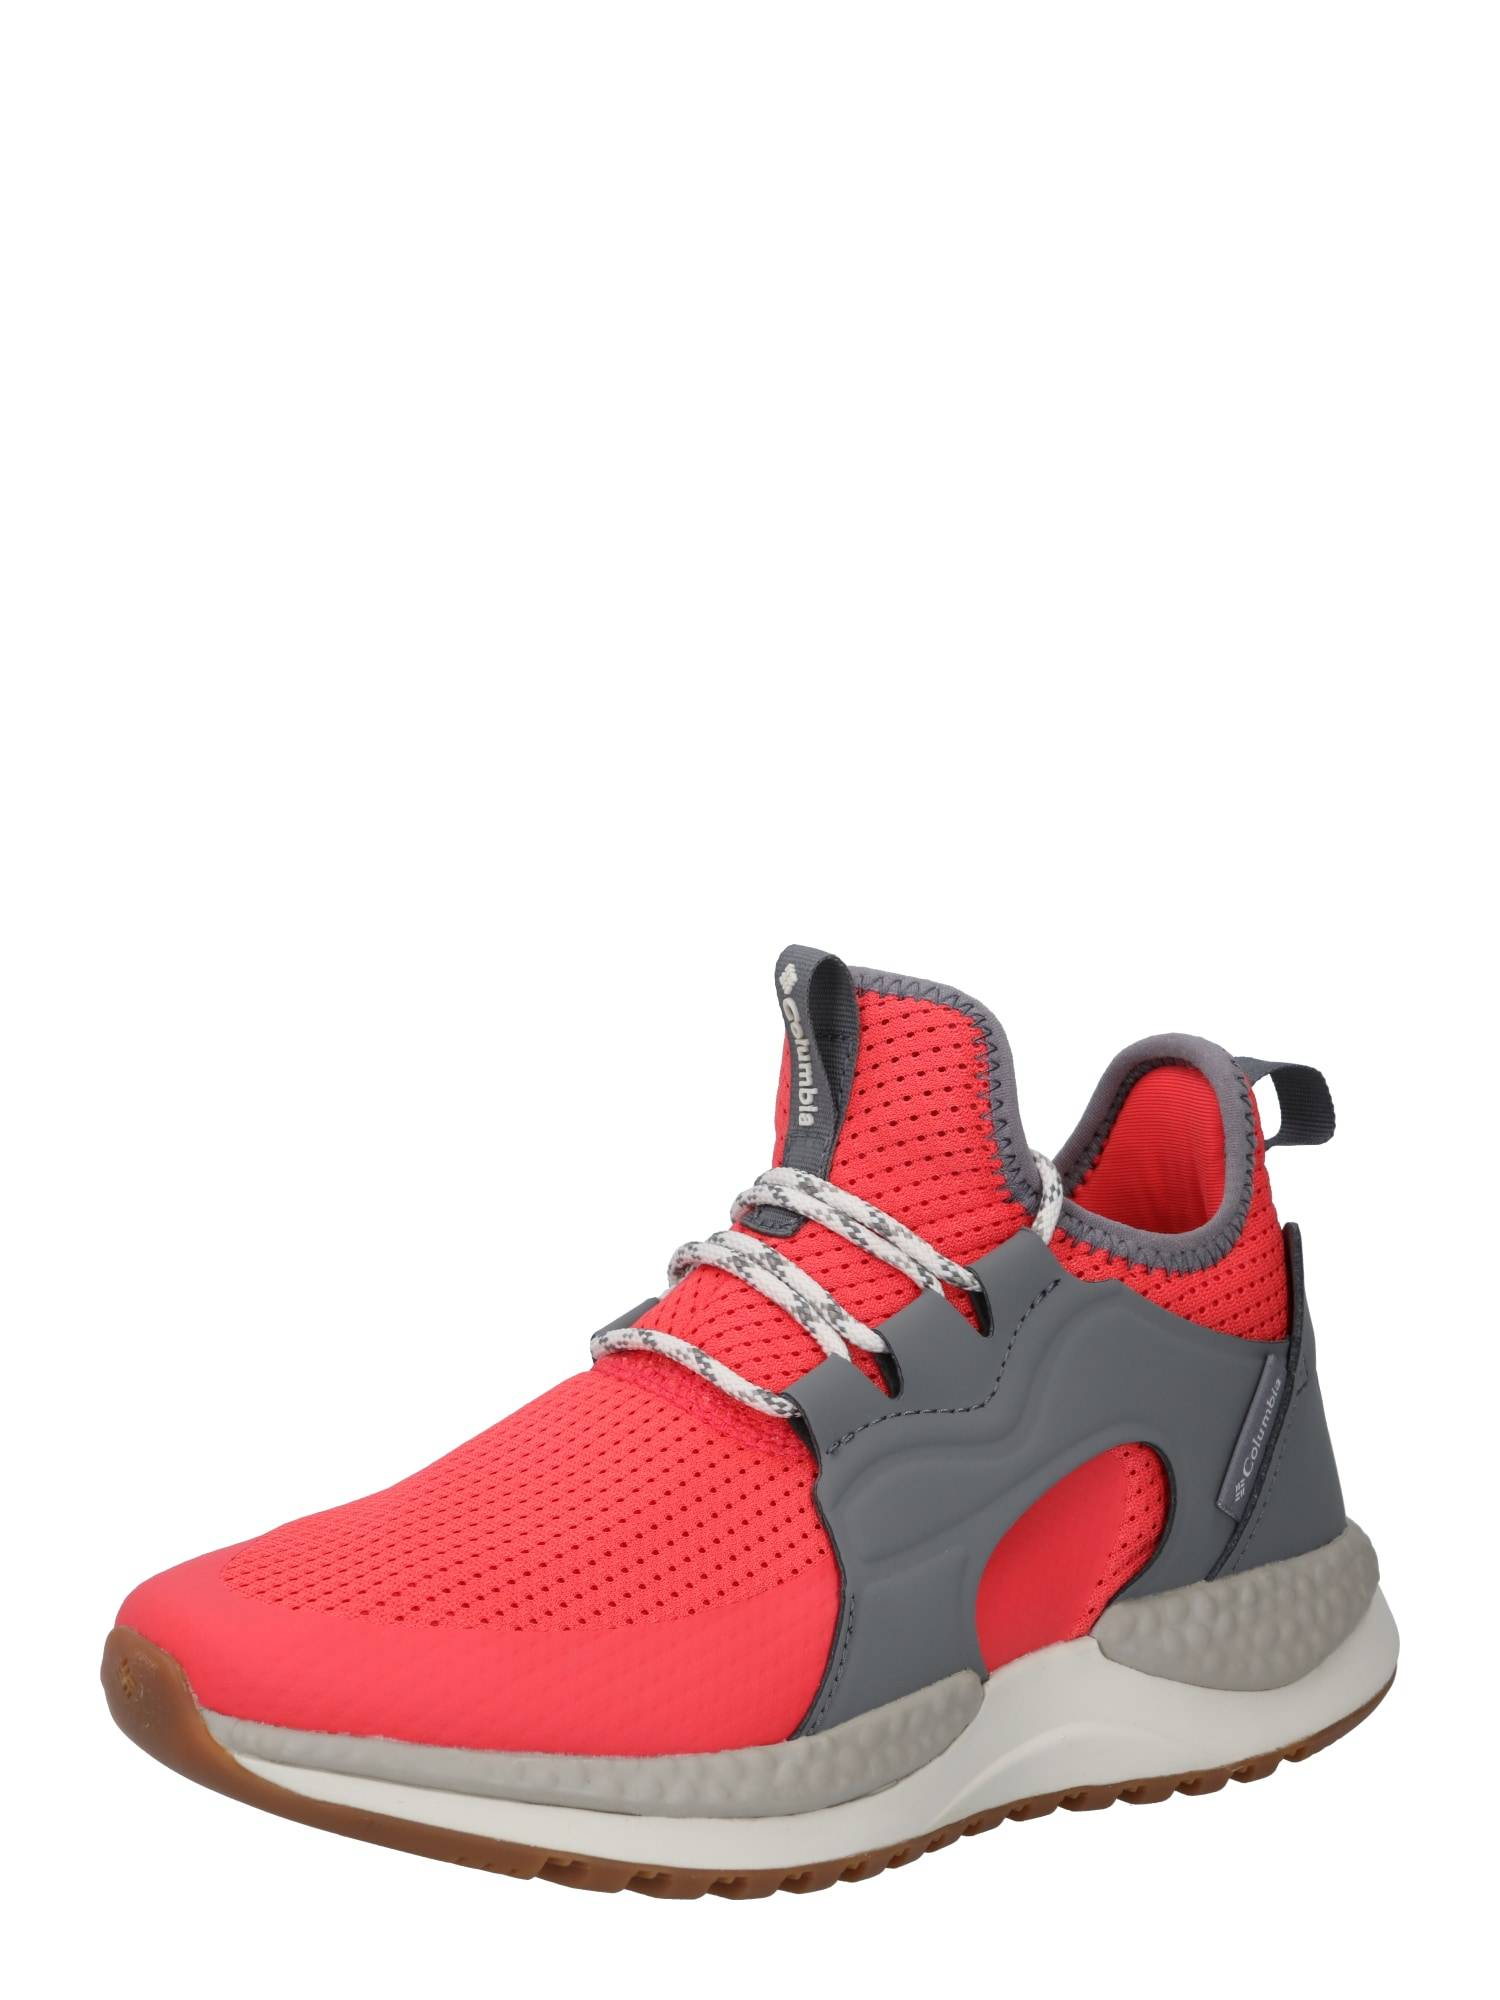 Columbia Baskets basses 'AURORA'  - Rouge - Taille: 8 - female